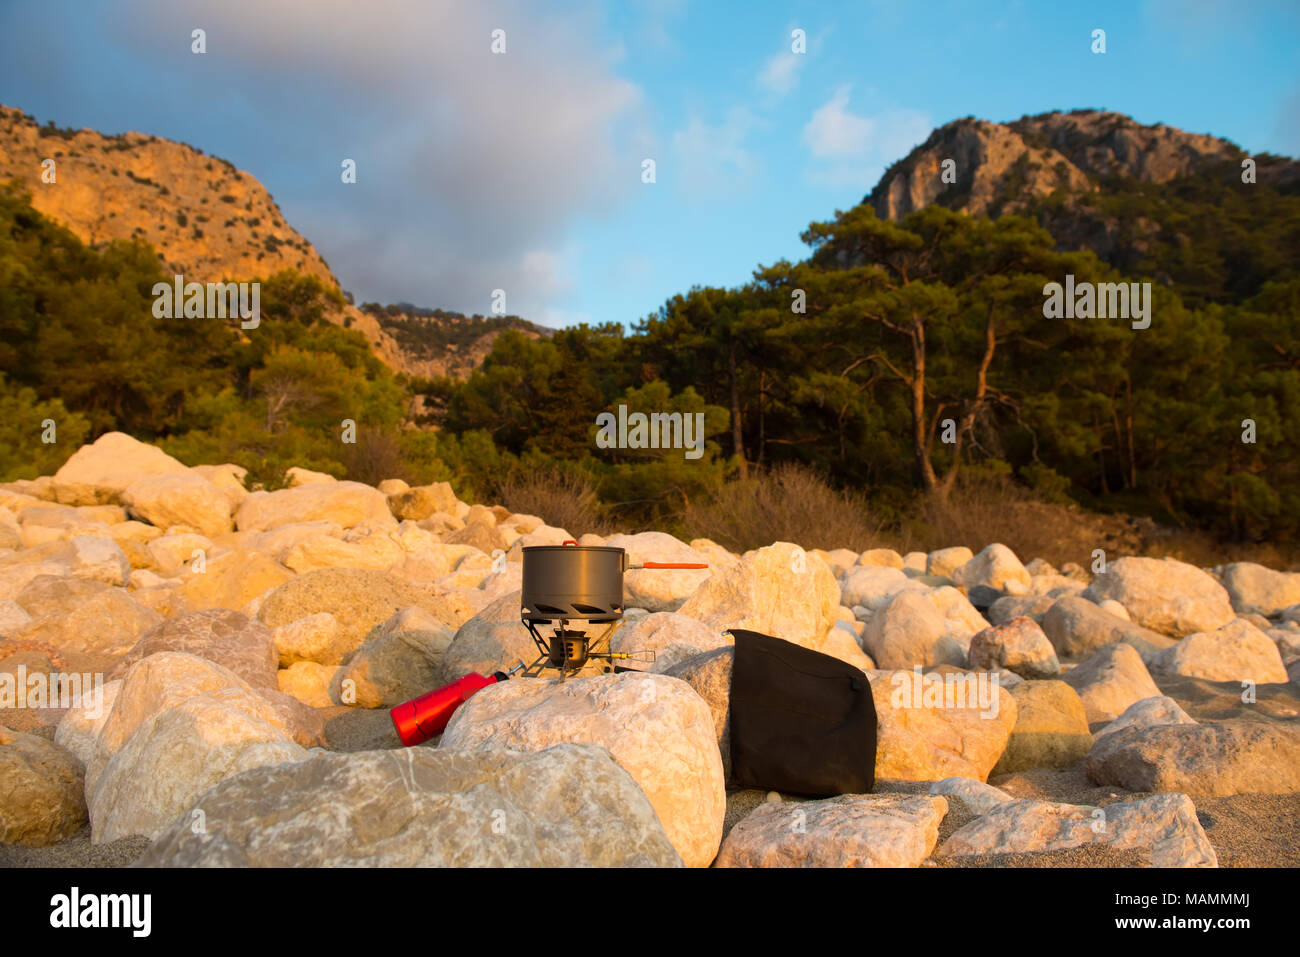 Tourist equipment and tools: camping gas - Stock Image